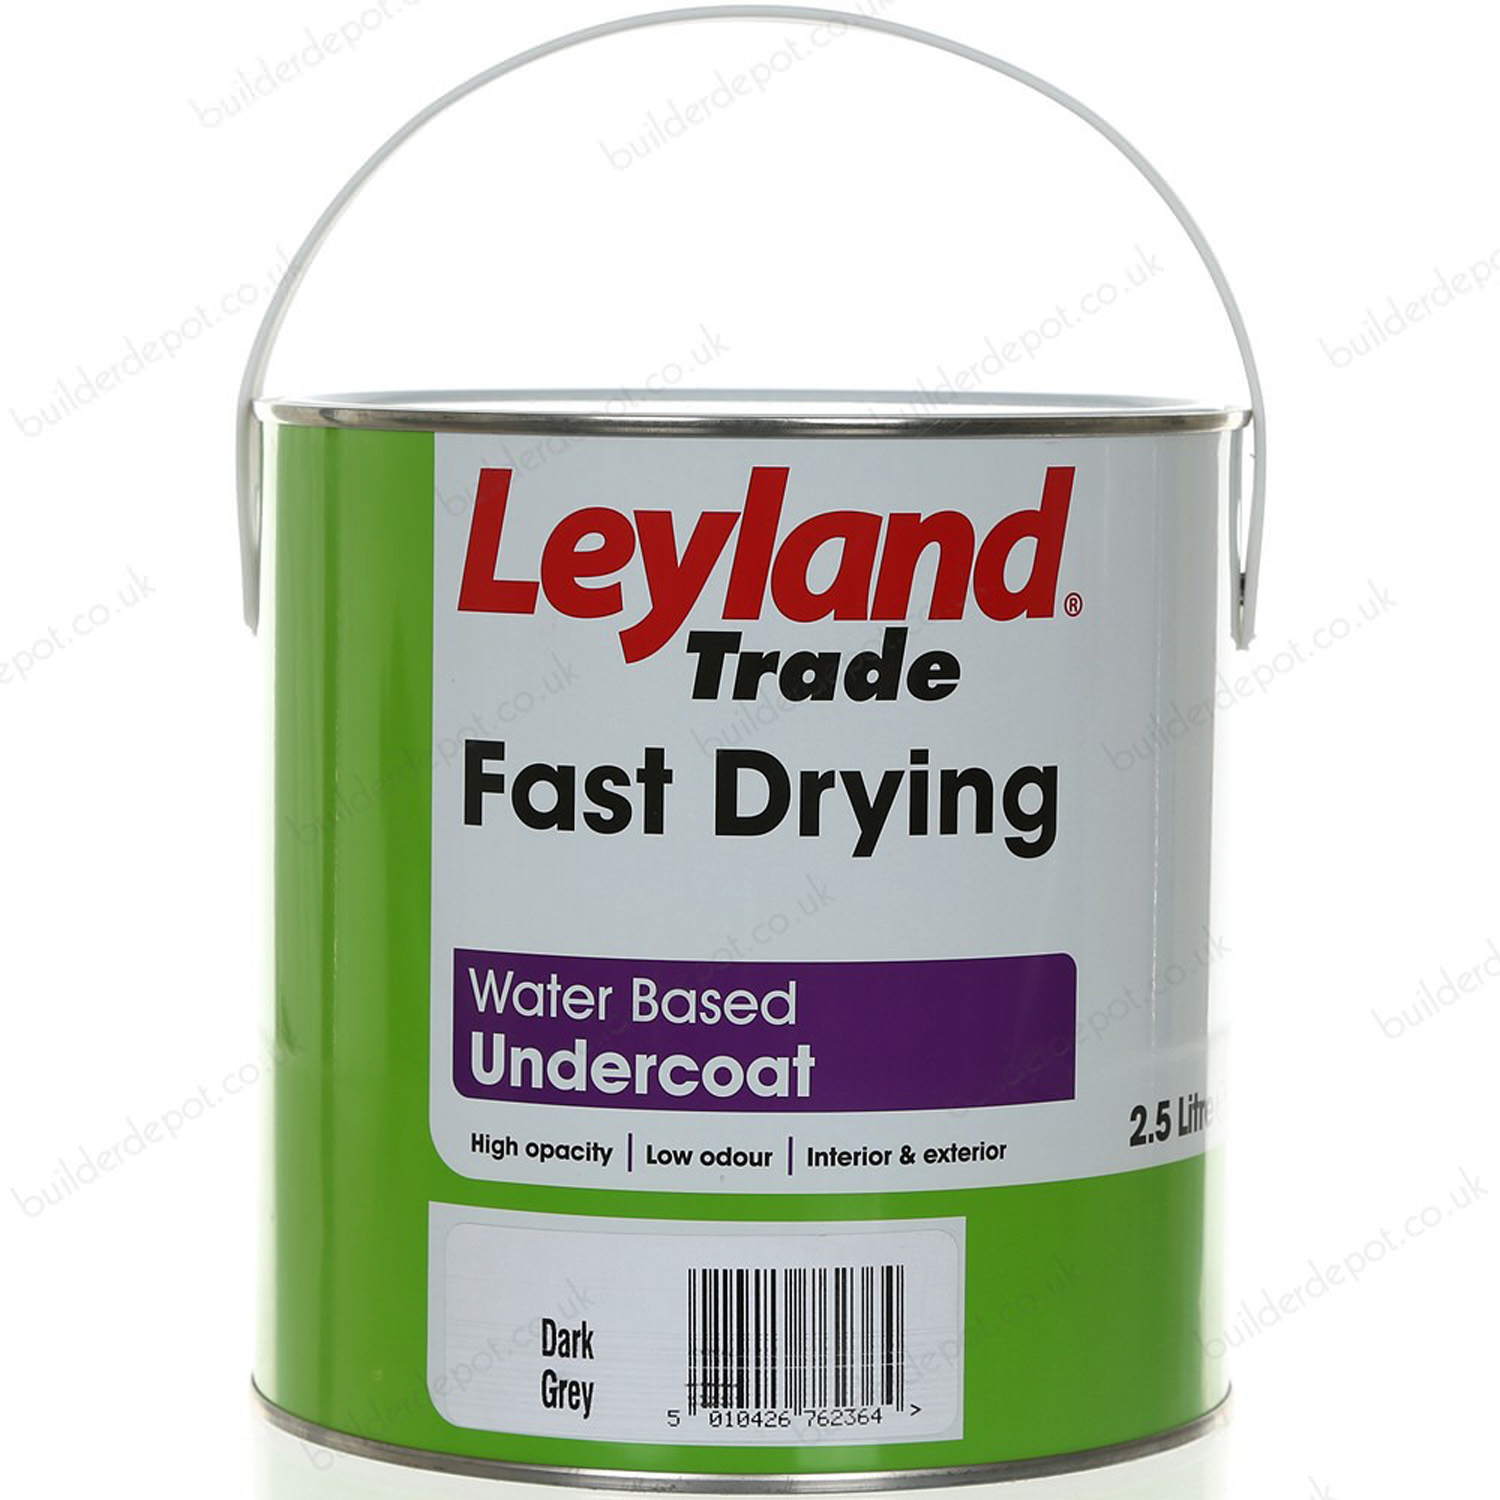 Image of Leyland 2.5L Fast Drying Undercoat Paint, Brilliant White